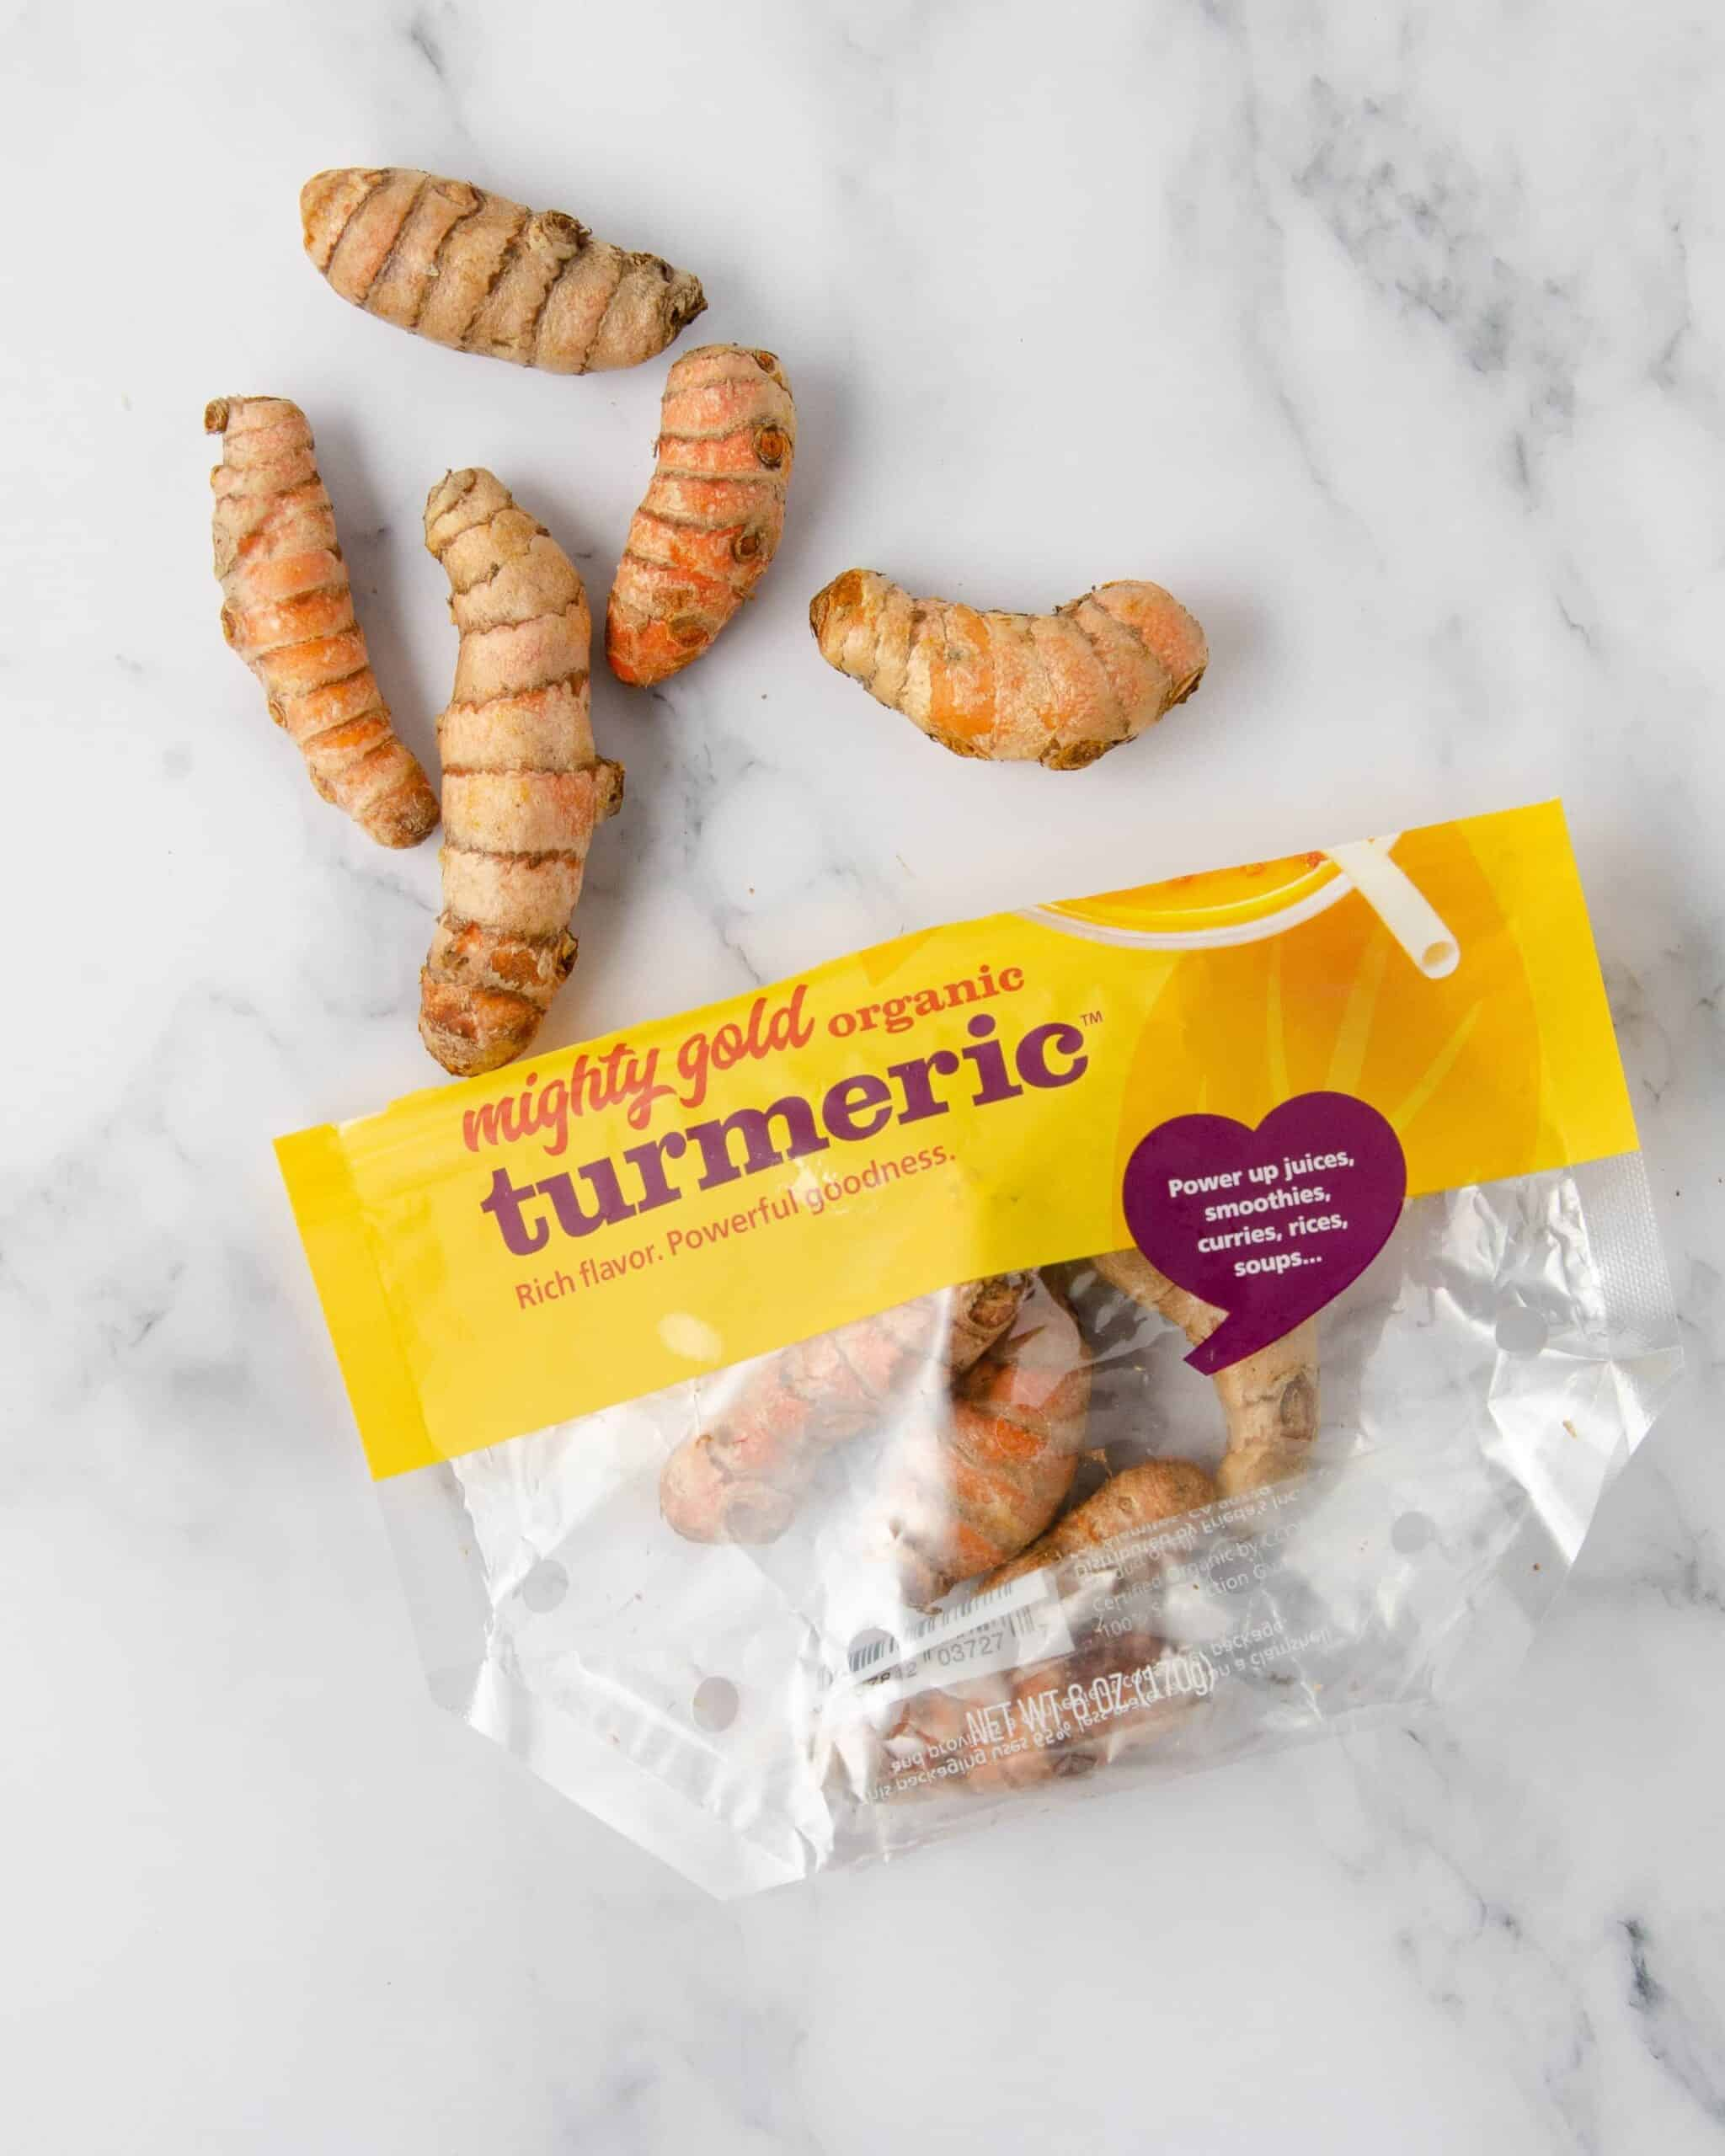 a bag of turmeric root on a marble countertop